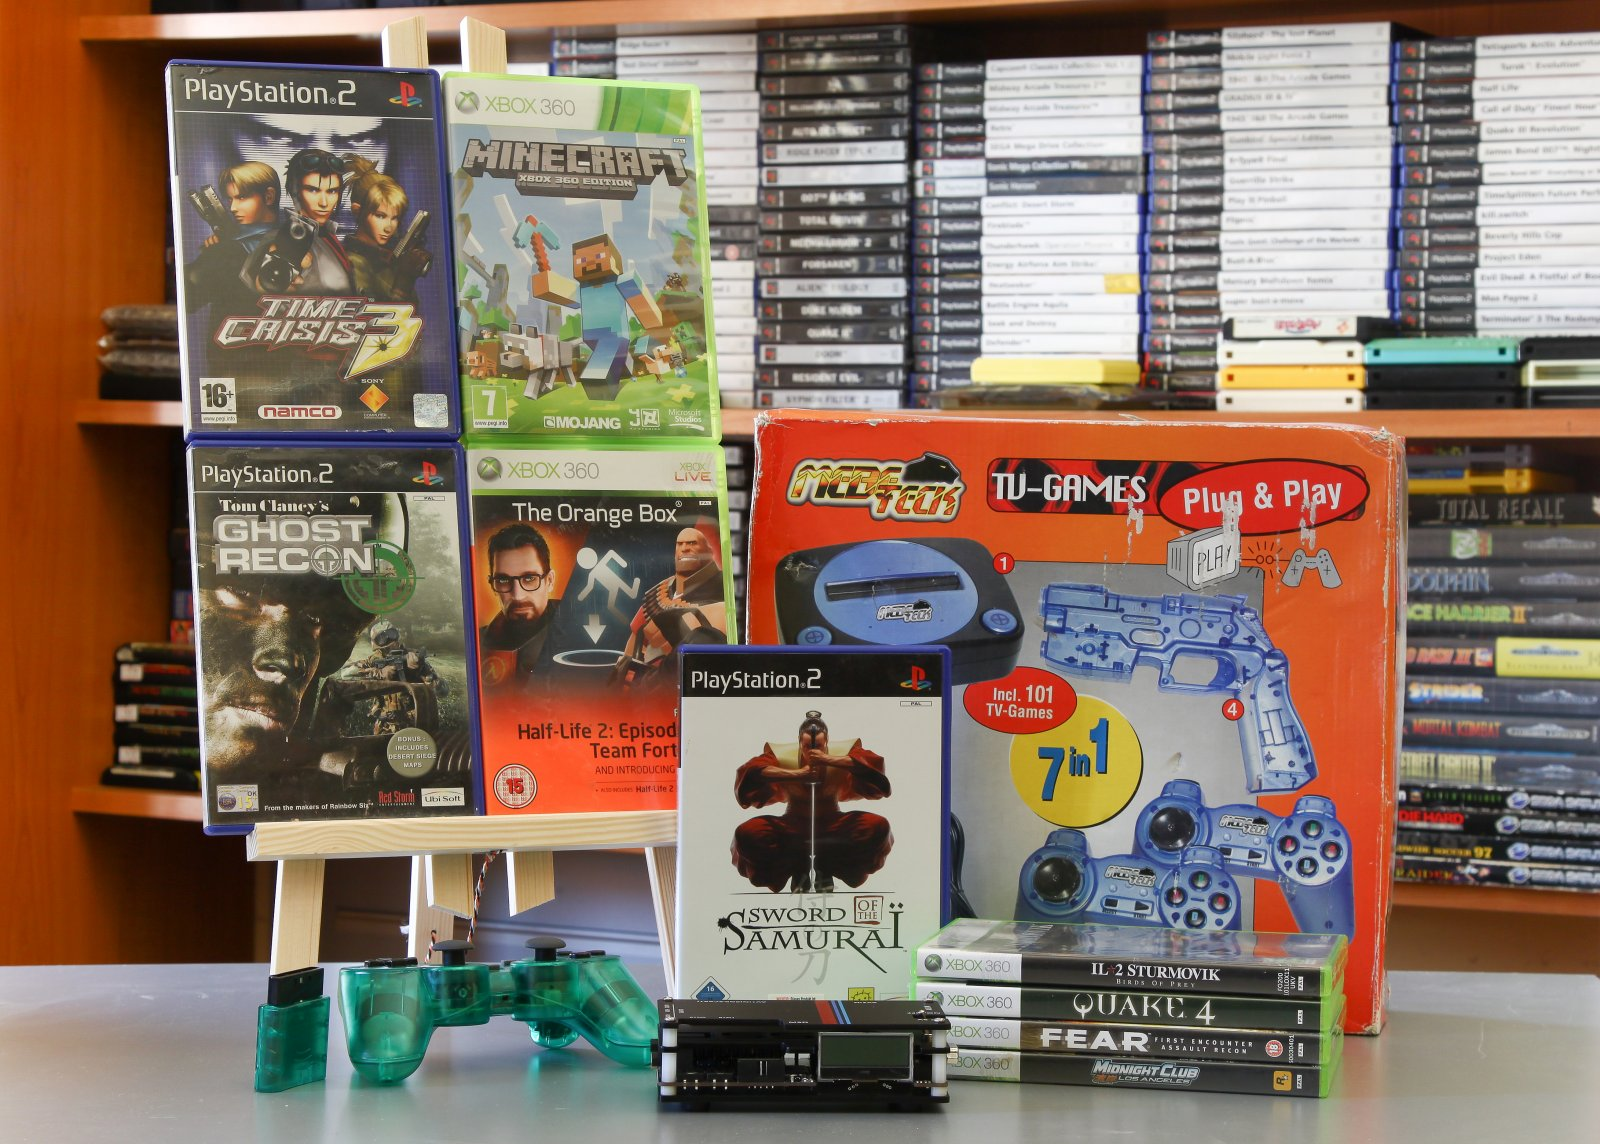 Xbox 360, PS2, Famiclone, OSSC